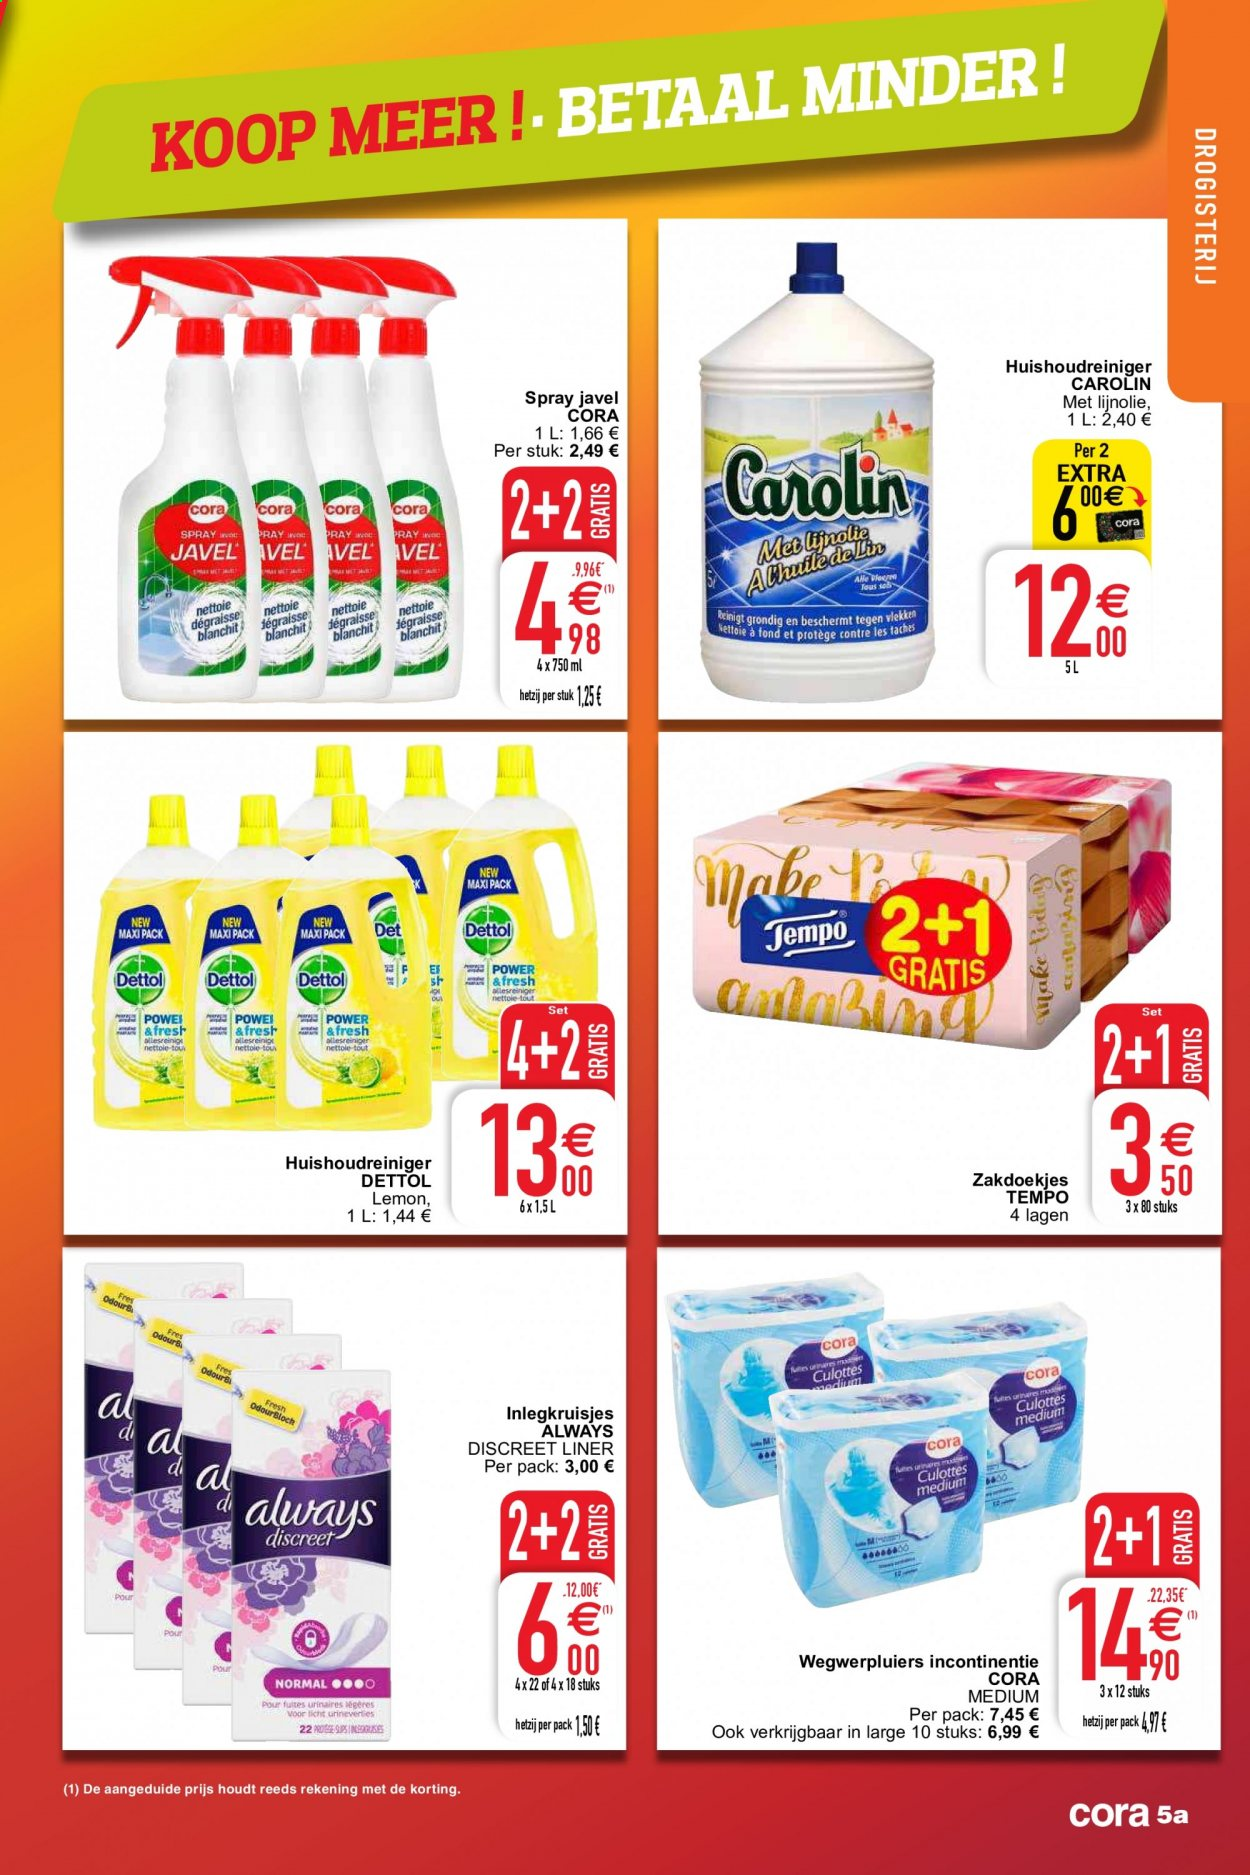 Catalogue Cora - 29.9.2020 - 5.10.2020 - Produits soldés - always, discreet. Page 5.